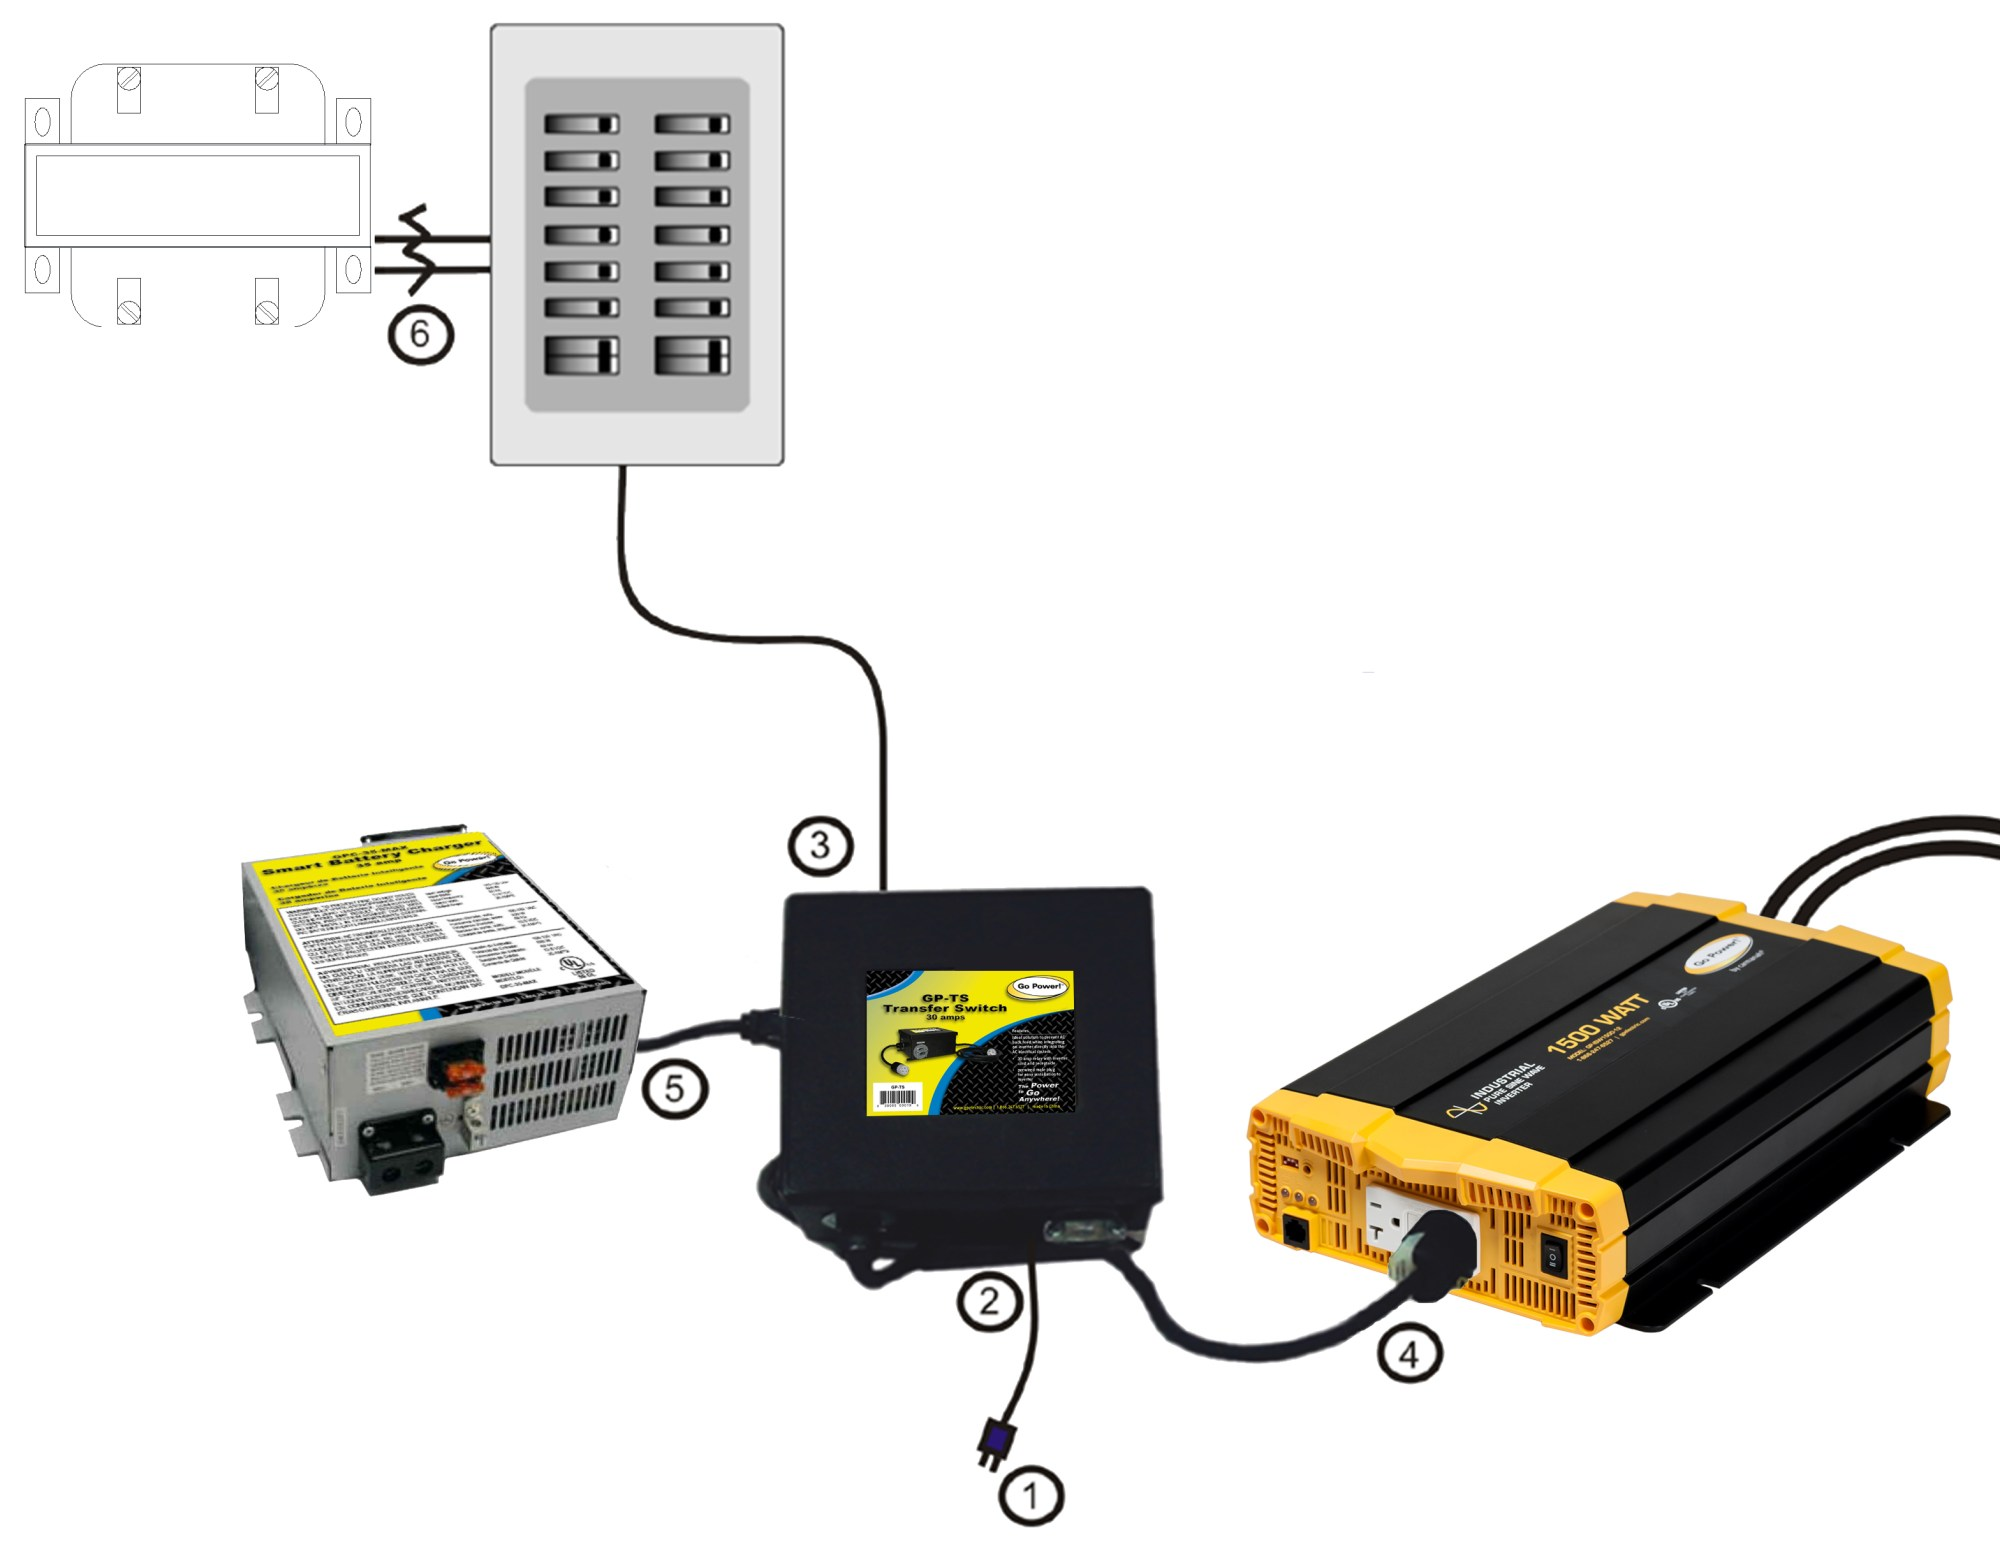 hight resolution of 30 amp transfer switch go power rv slide out wiring diagram go power rv inverter wiring diagram